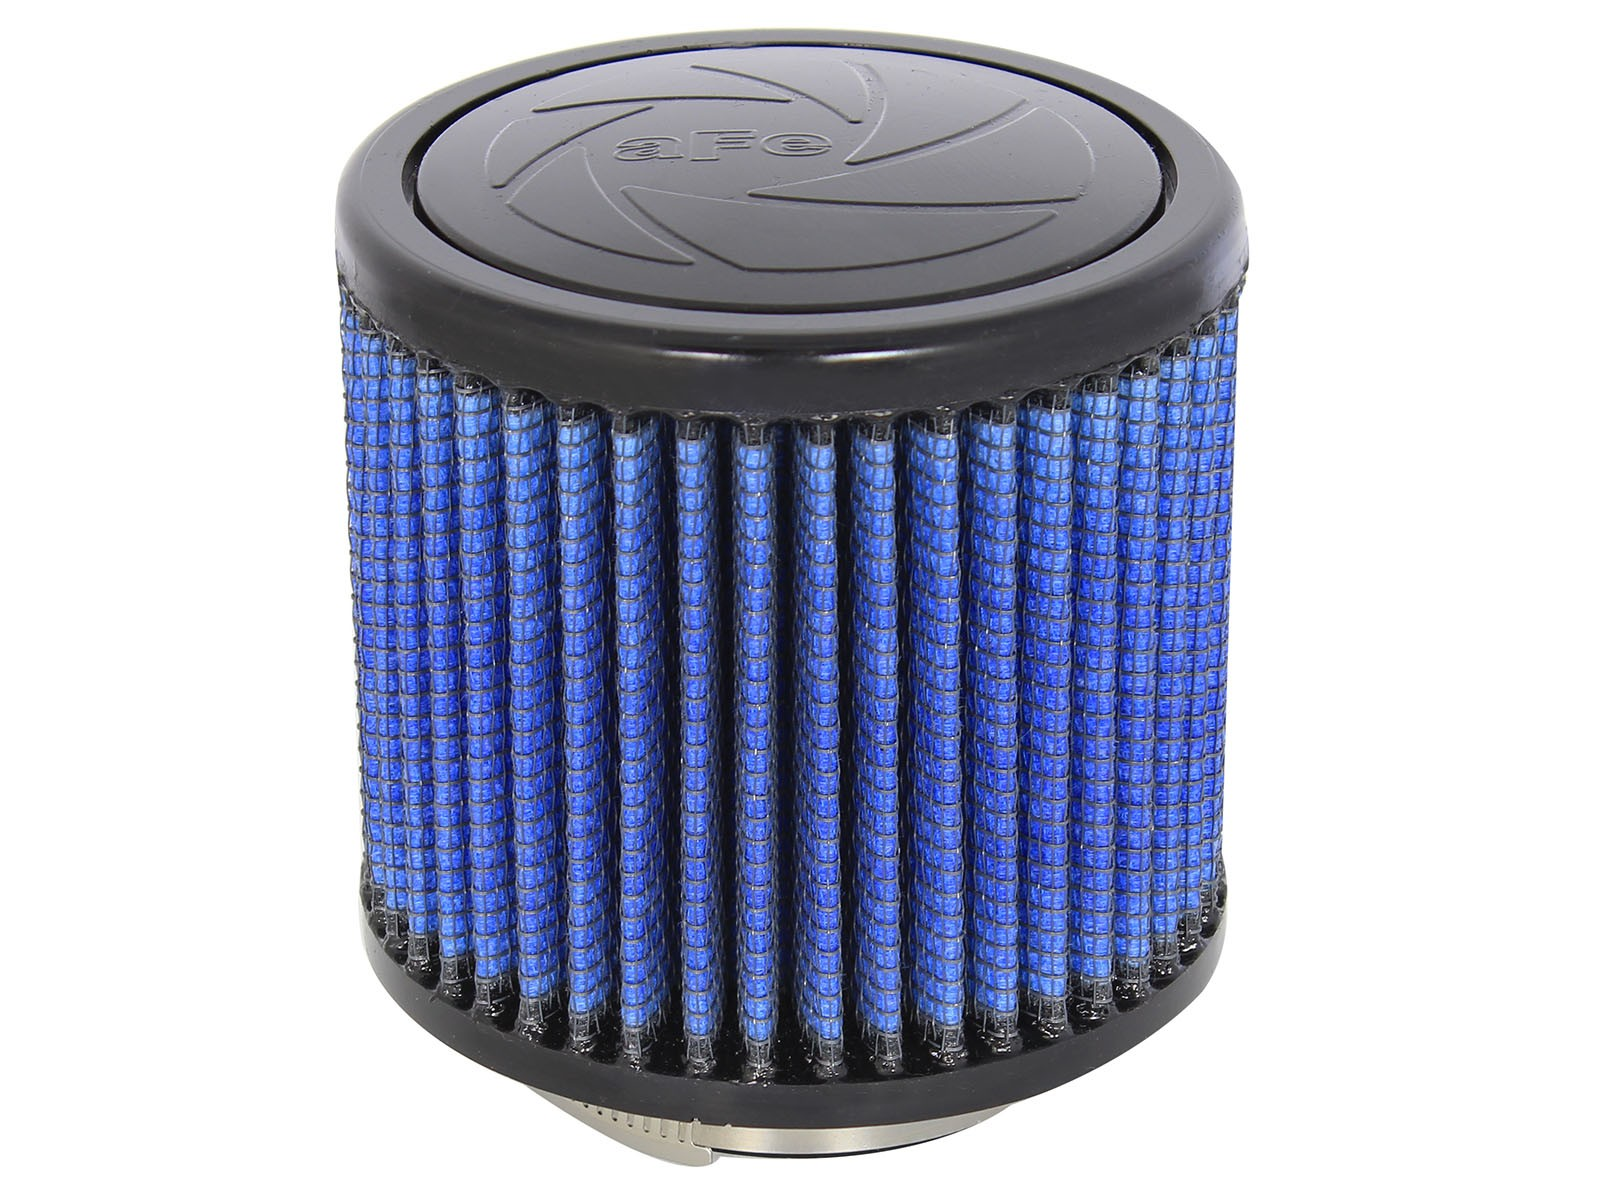 aFe POWER 24-24504 Magnum FLOW Pro 5R Air Filter